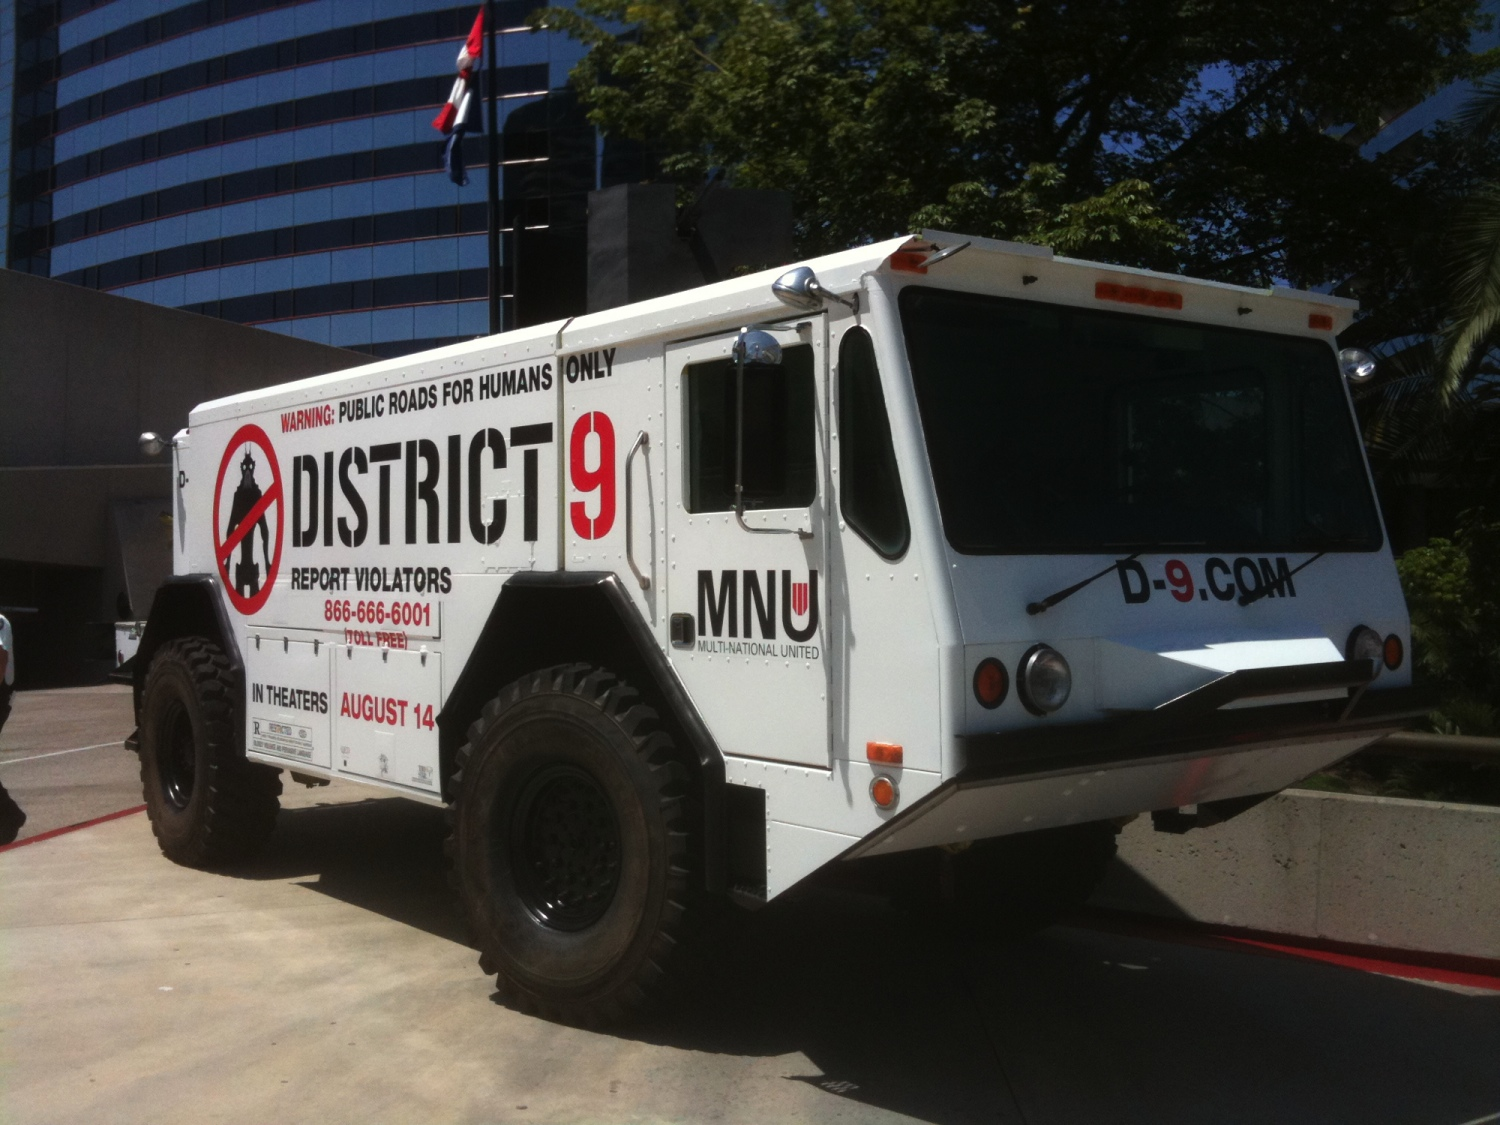 District 9's Comic-Con Truck